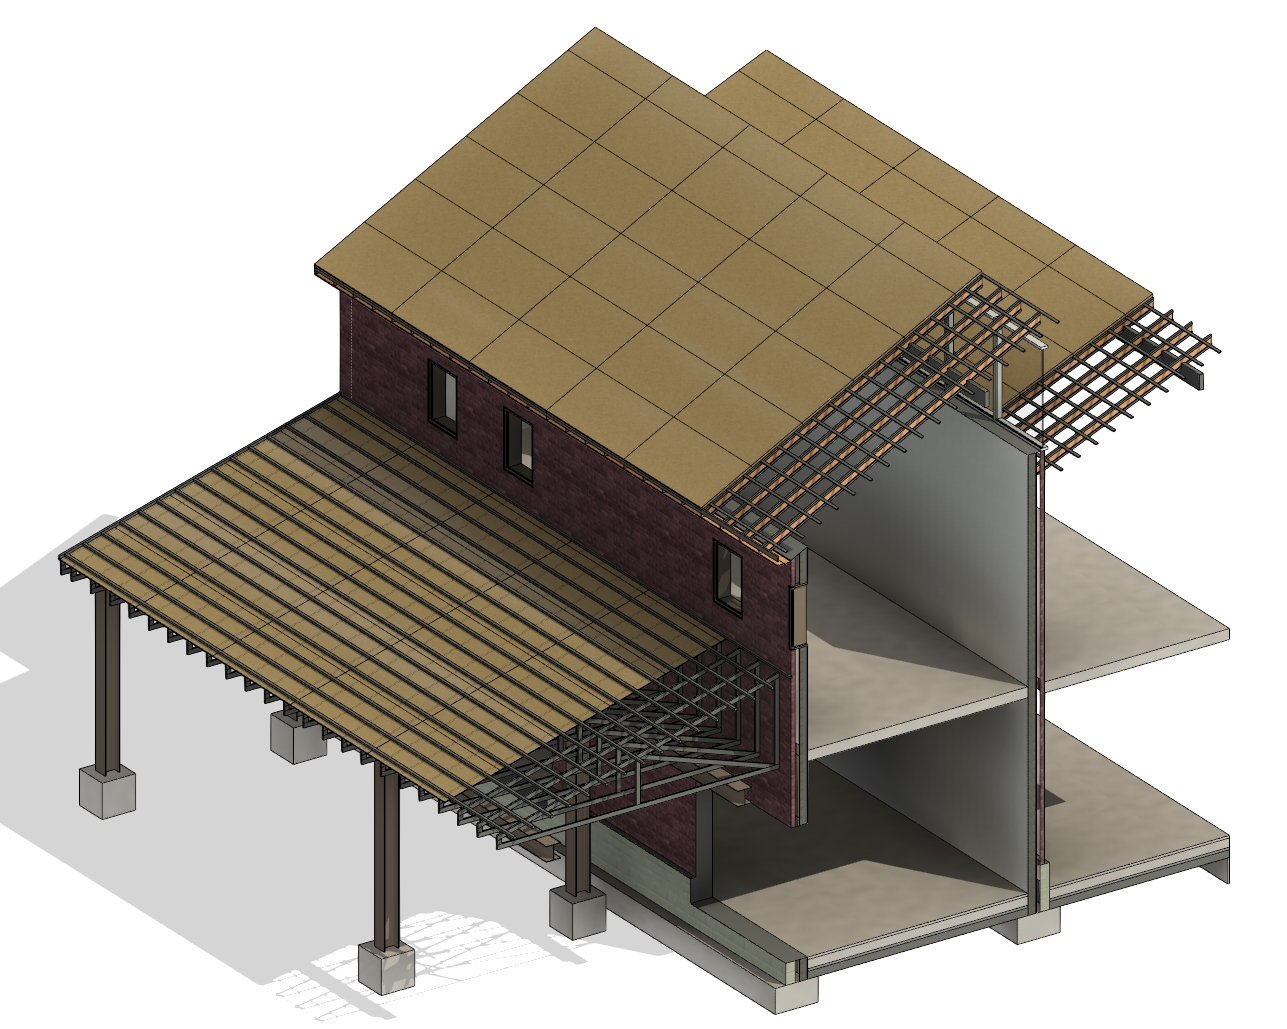 add layers of insulation, sheathing, and paneling using AGACAD Roof Framing BIM tools for Autodesk Revit